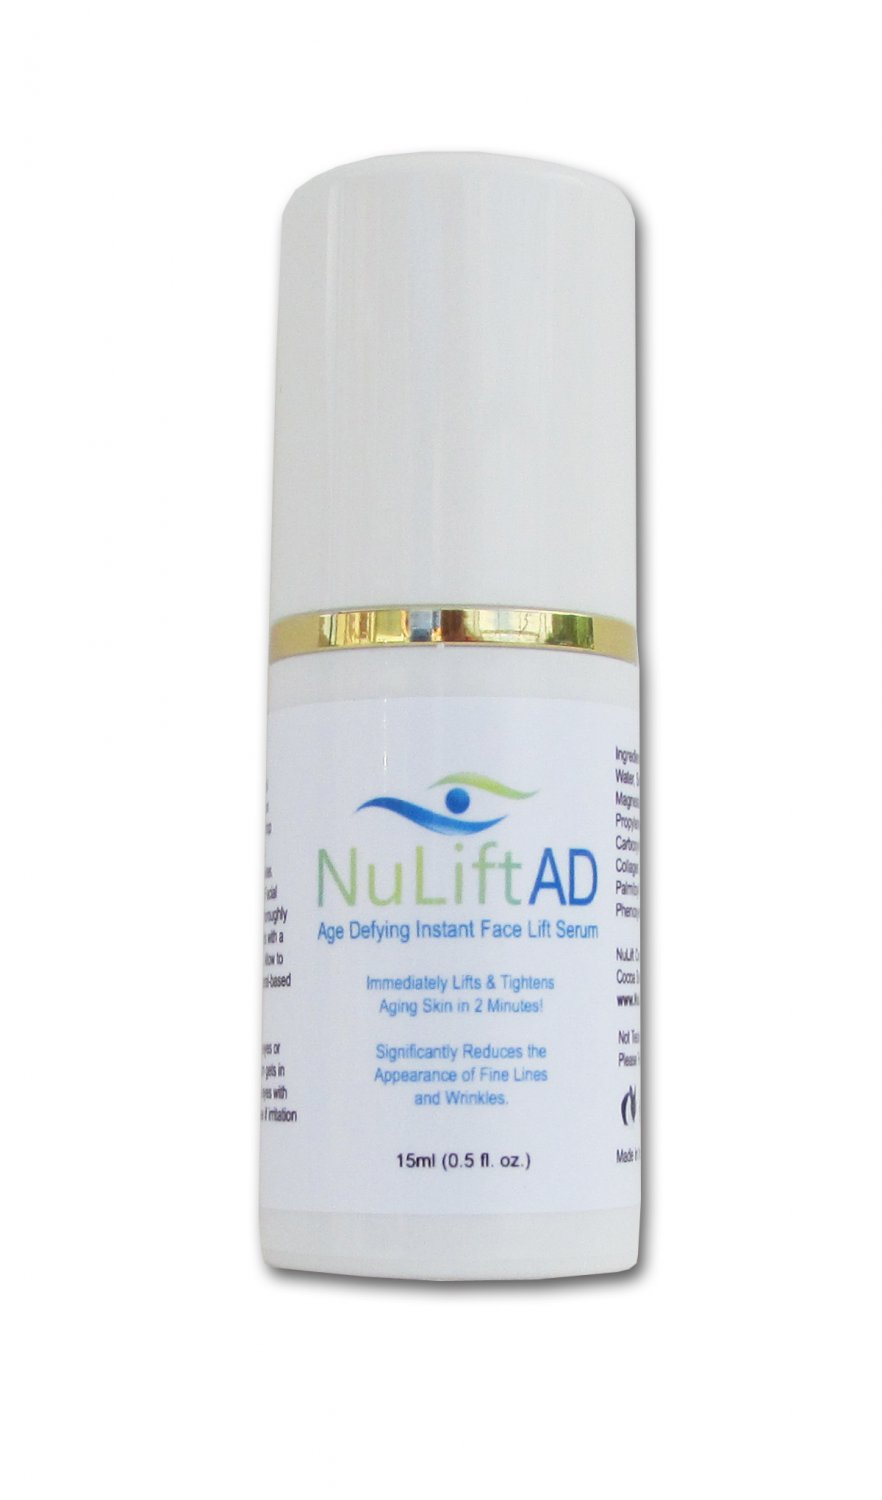 NuLift AD Instant Face Lift Serum